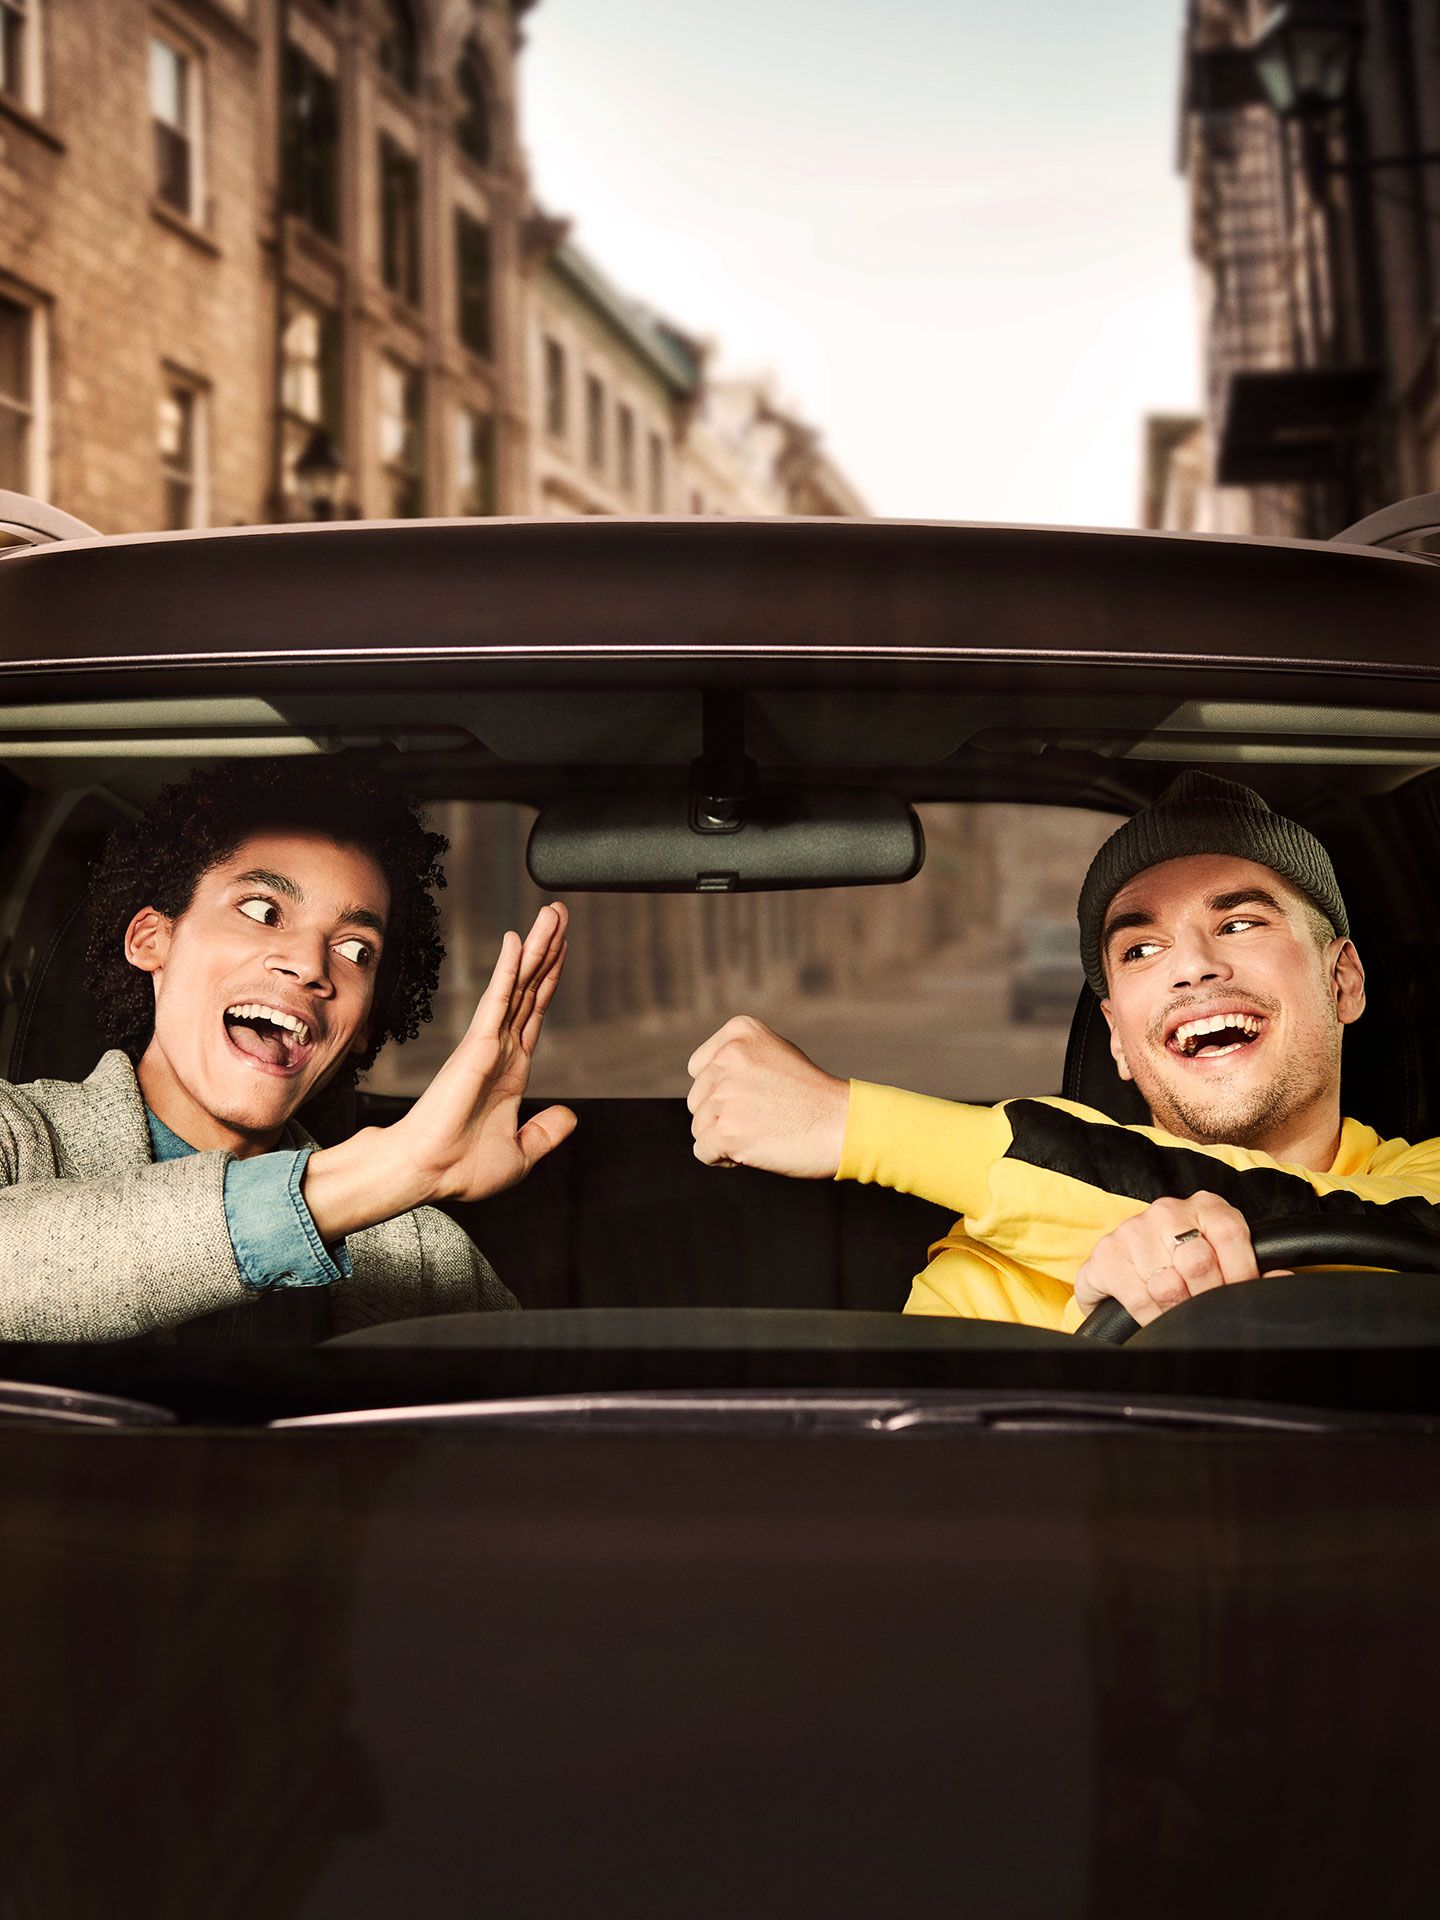 two young men in car one initiating a fist bump the other initiating a high five by Jocelyn Michel for Netlift